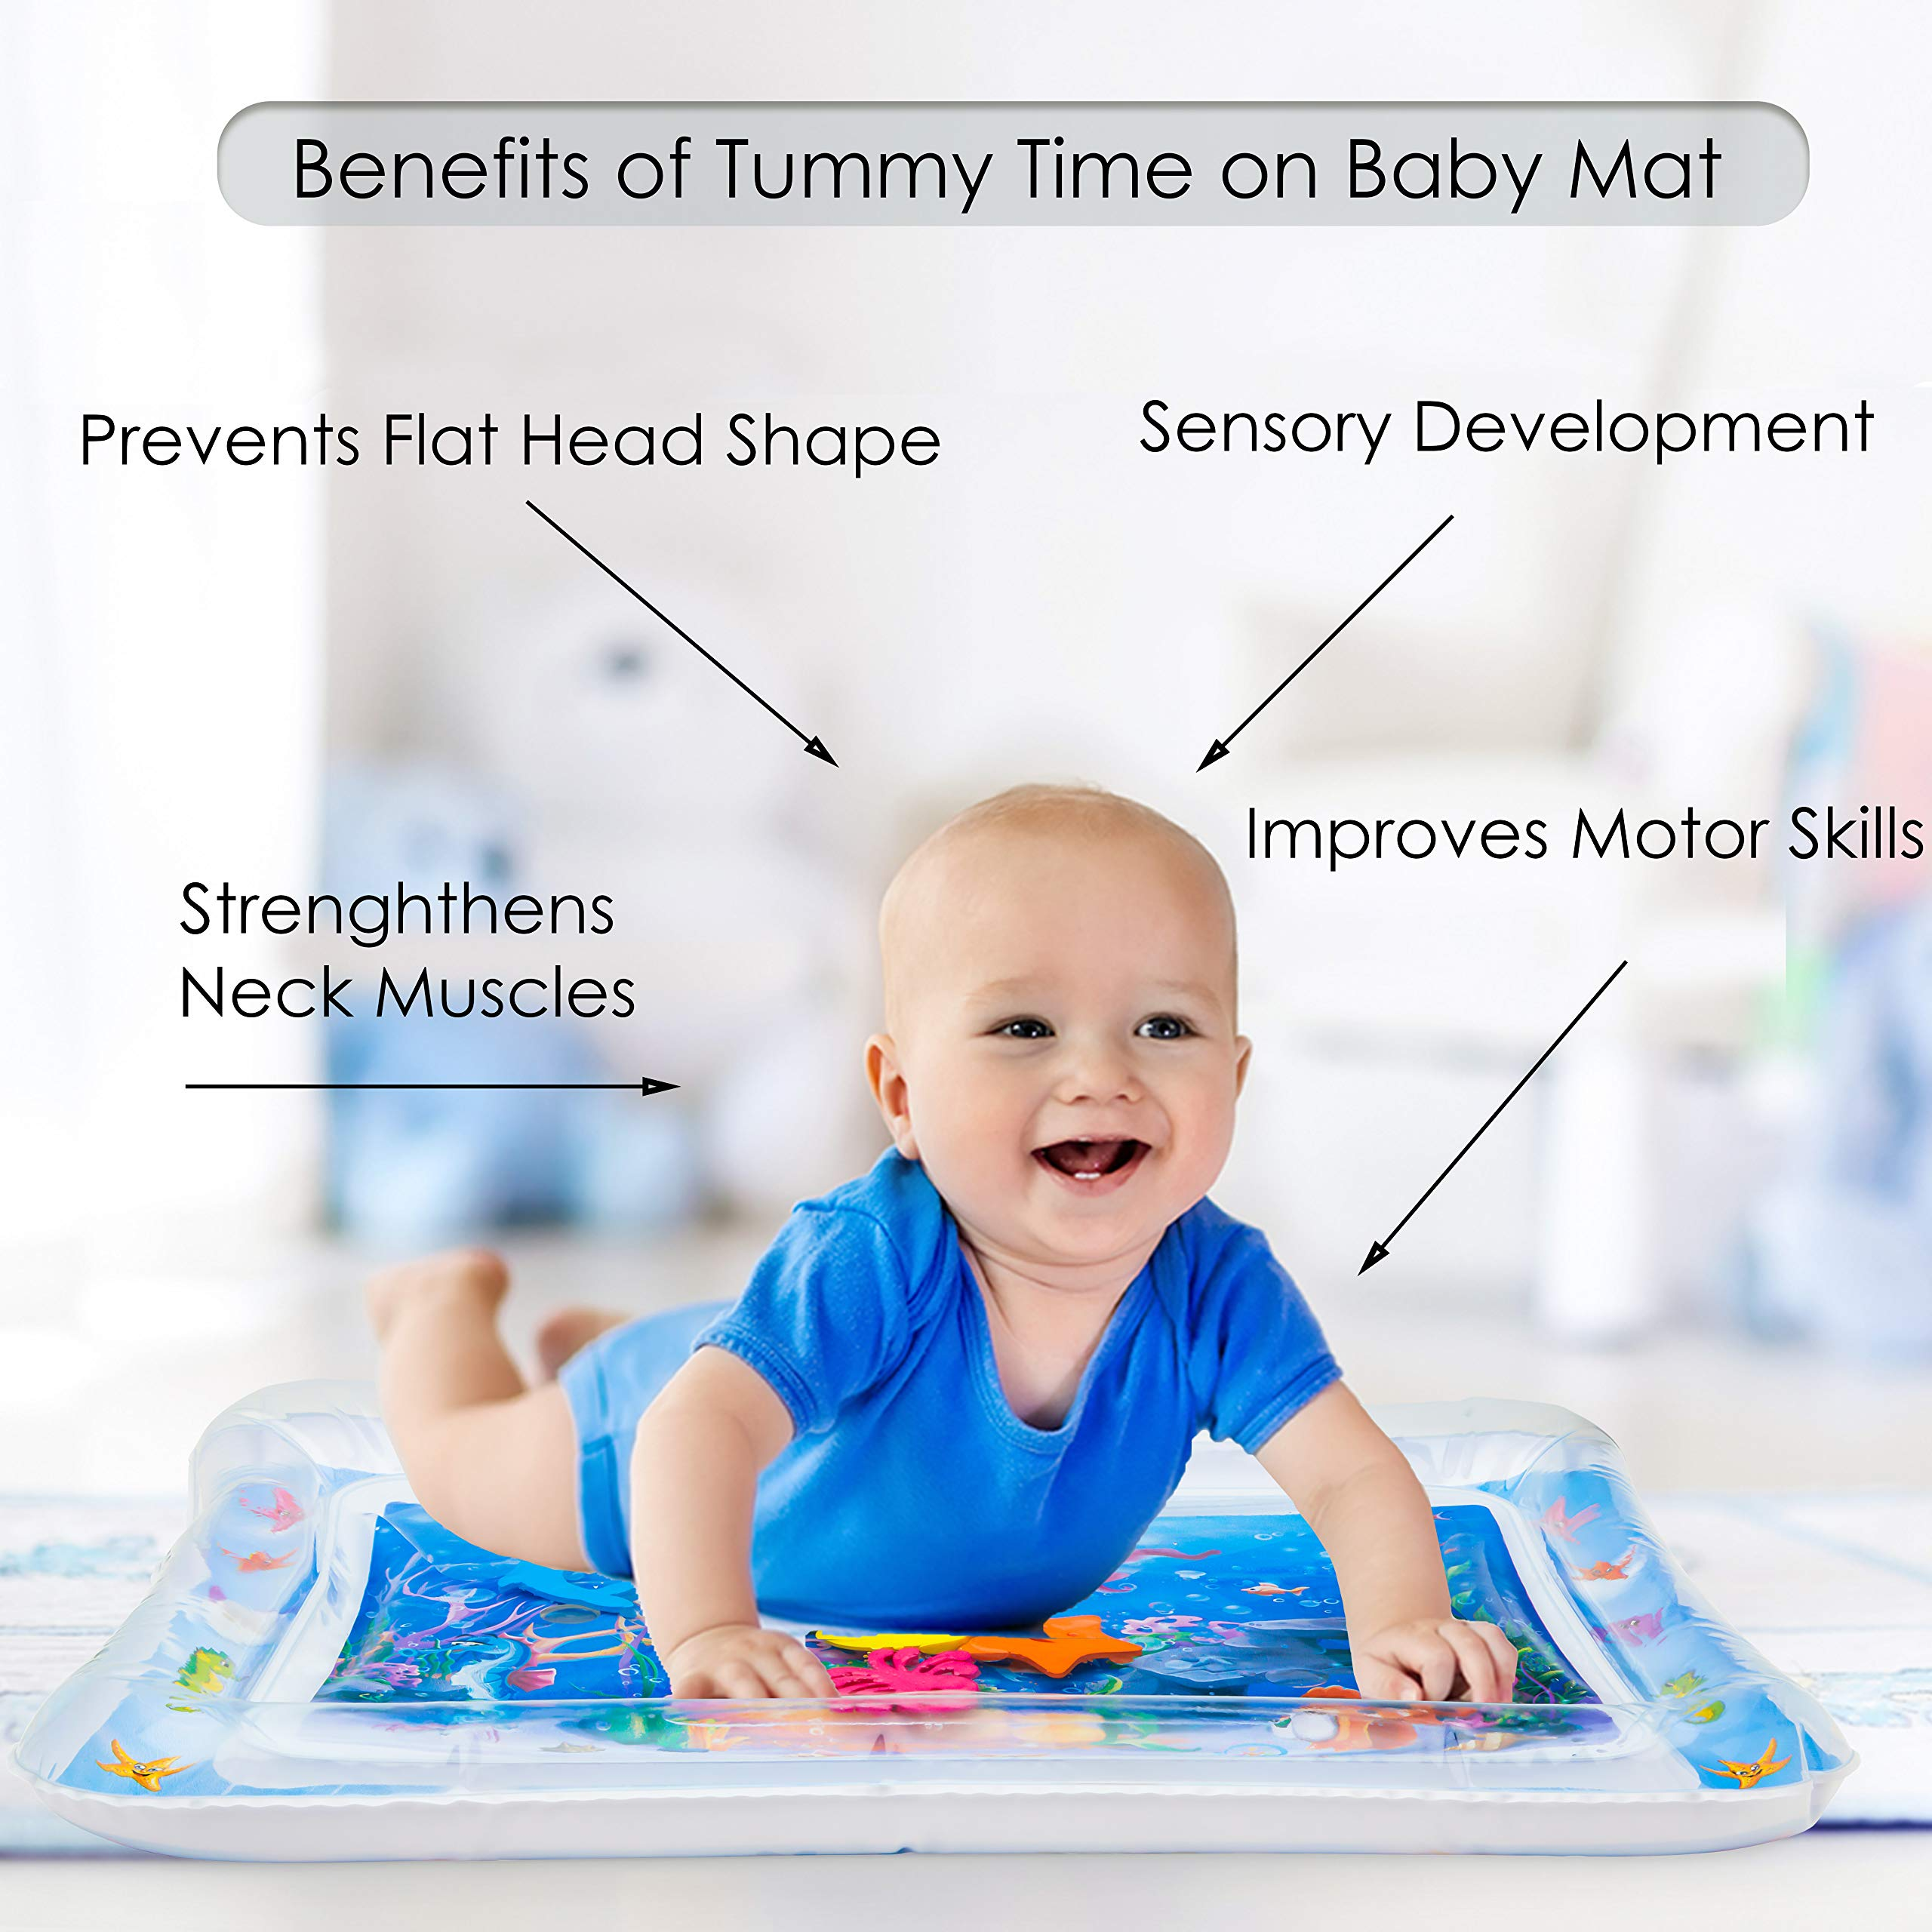 Splashin'kids Inflatable Tummy Time Premium Water mat for Infants & Toddlers is The Perfect Fun time Play Activity Center for Your Baby's Stimulation and Growth by Splashin'kids (Image #3)